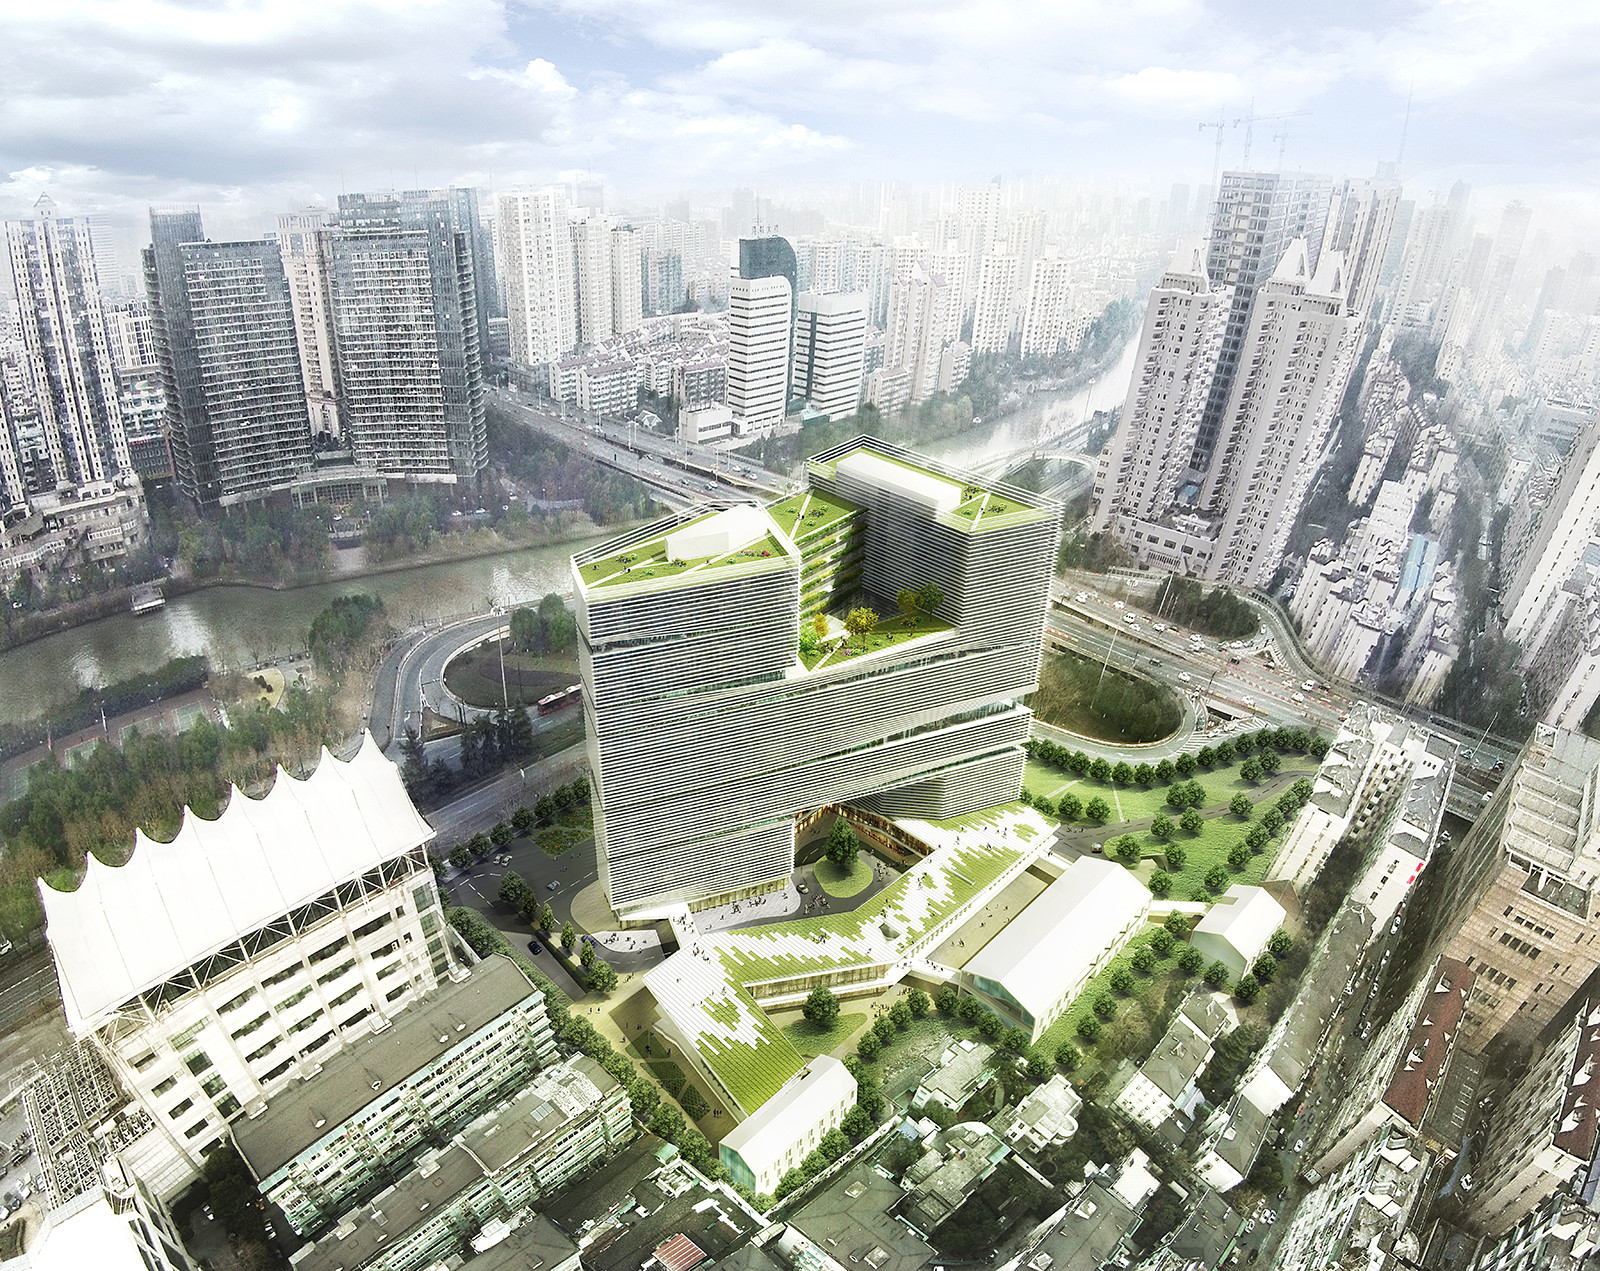 LYCS to Break Ground on Zhejiang Printing Group Headquarters in China, Aerial view. Image Courtesy of LYCS Architecture